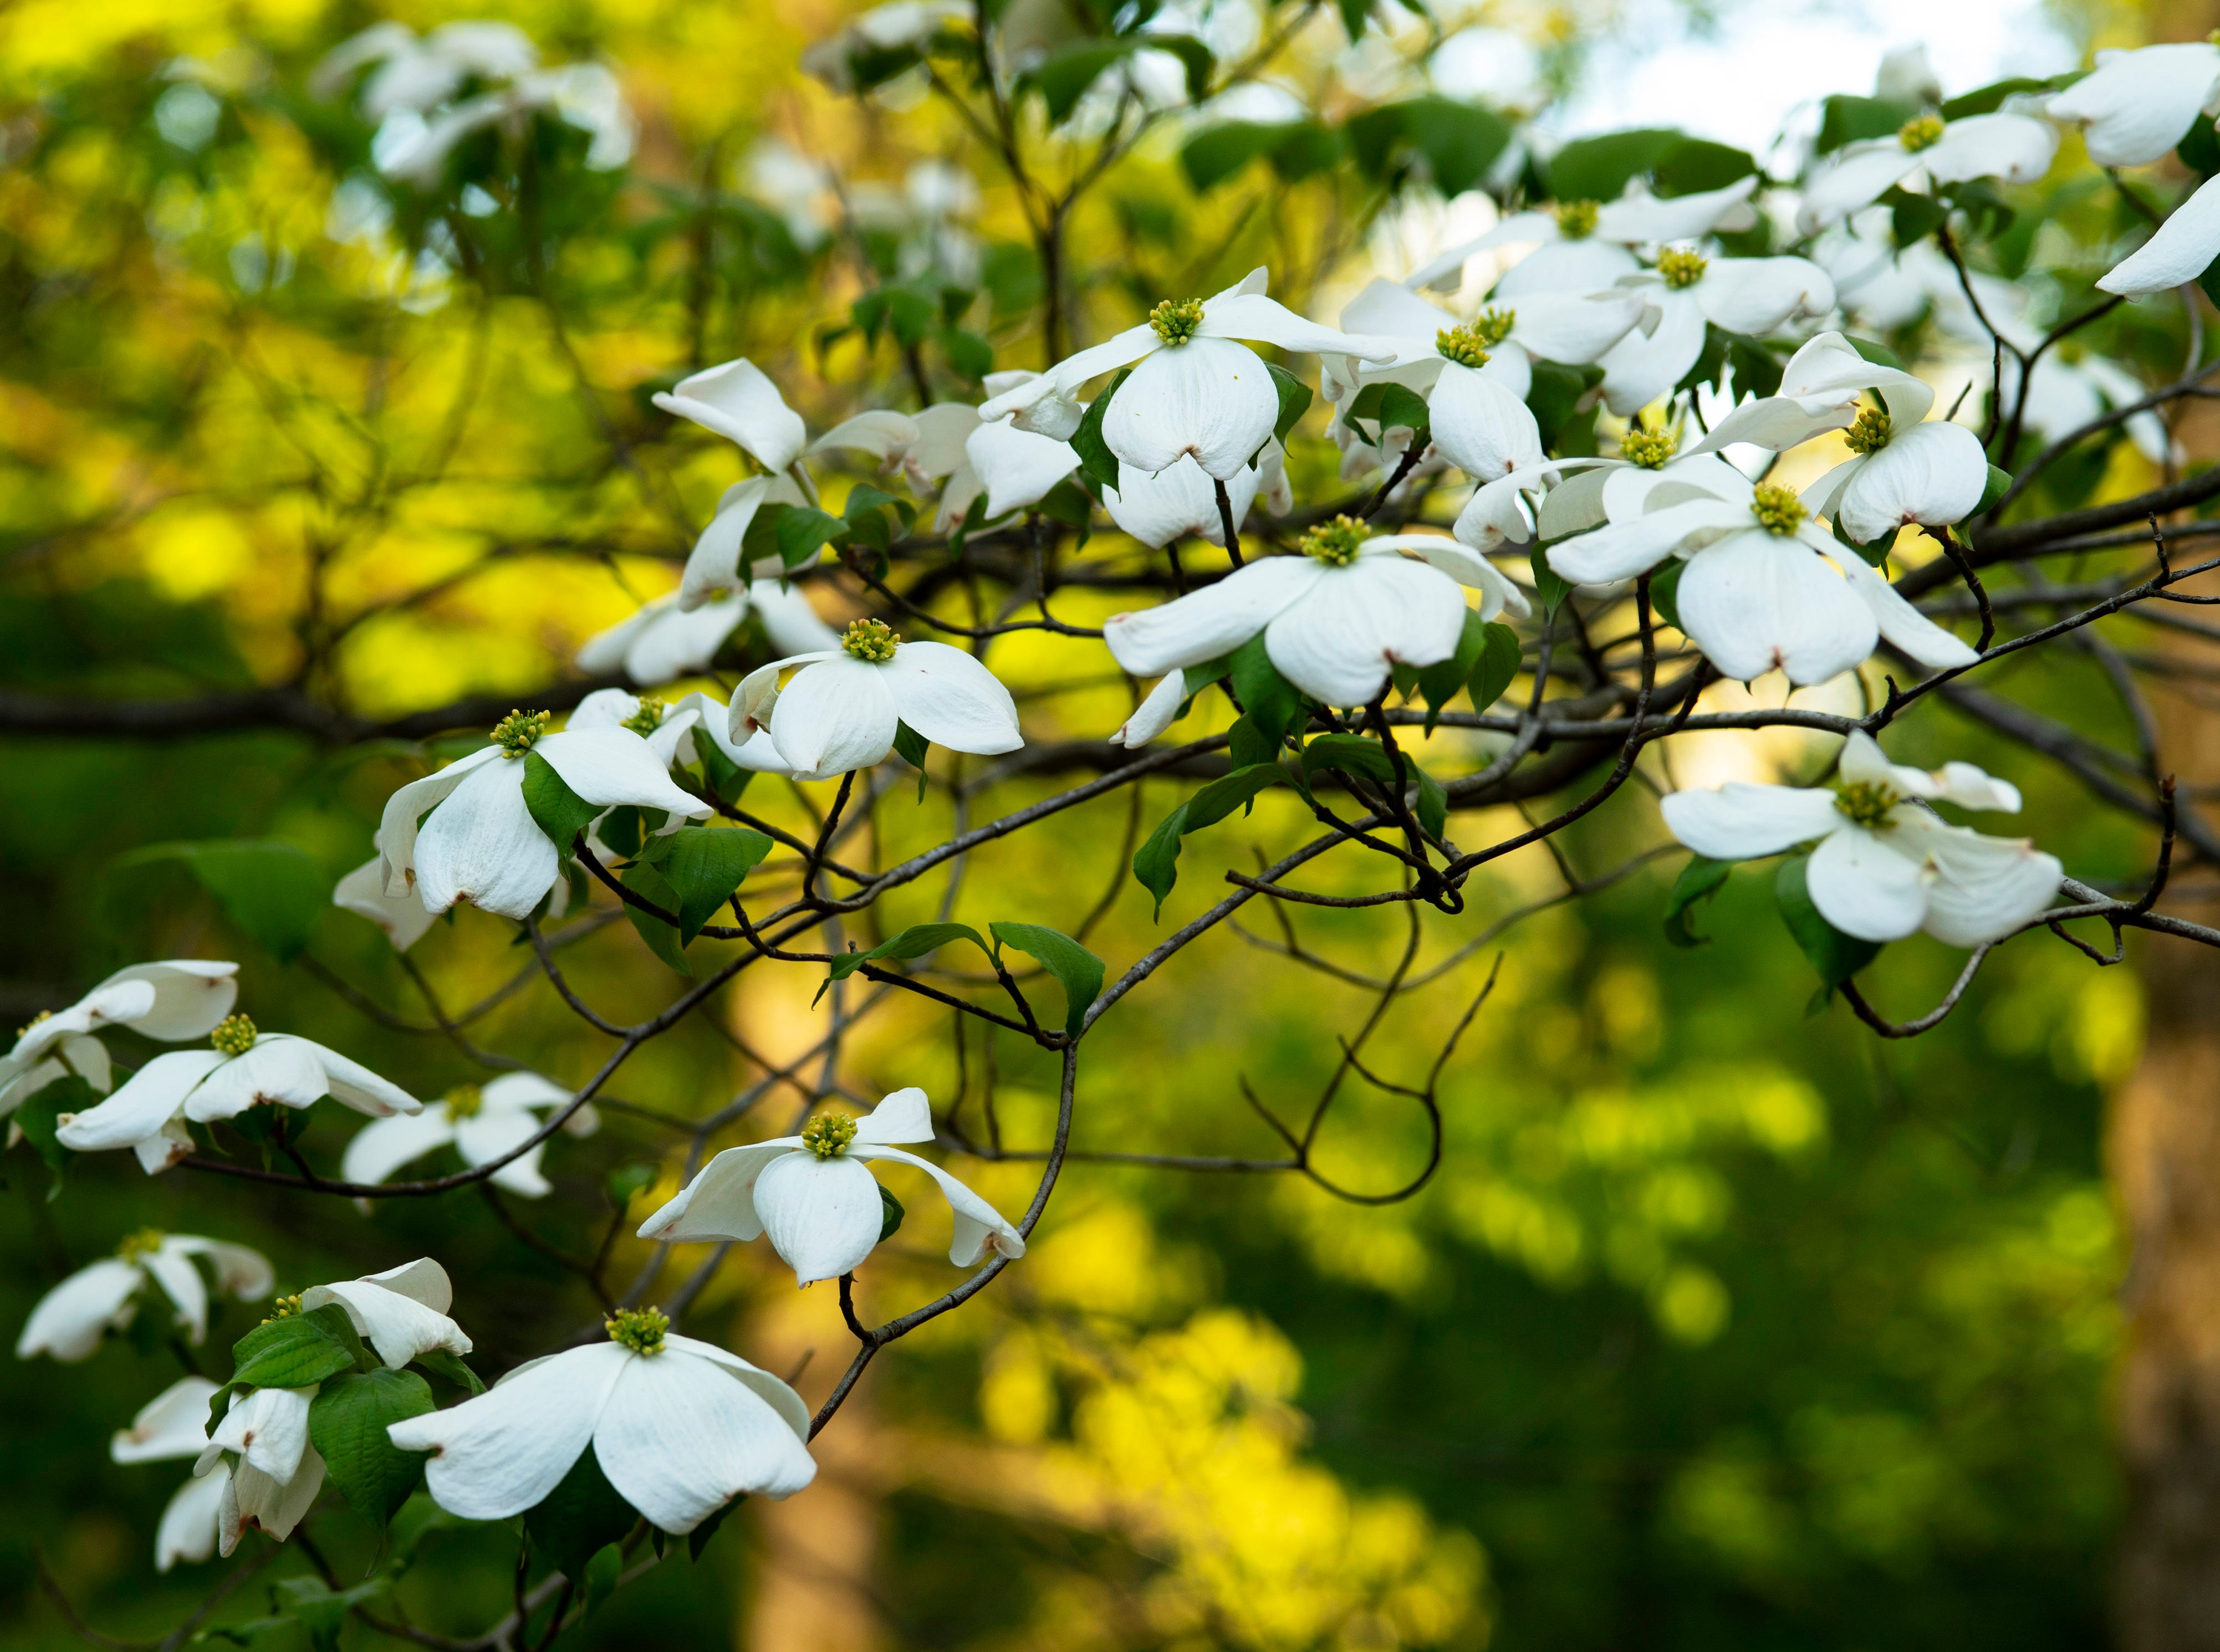 Dogwood blossoms are also at peak blossom time at the Azalea Path Arboretum and Botanical Gardens in Pike County, Ind., Friday, April 26, 2019. The facility was started by Beverly Knight in 1979 on 15 acres and has grown to more than 60 acres and has about 500 varieties of the flower.